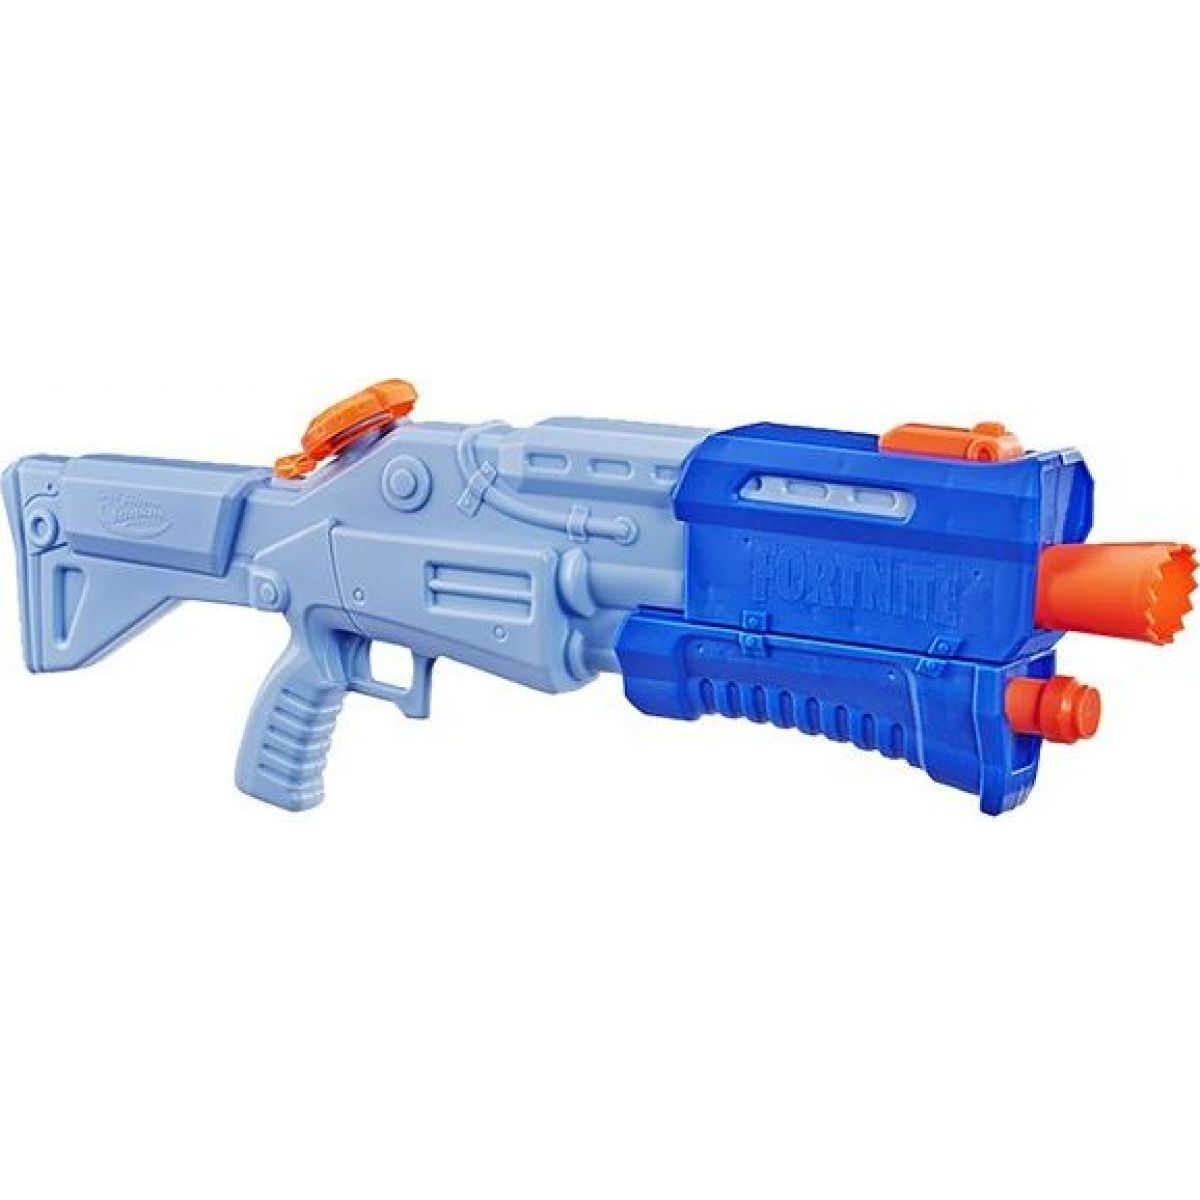 Hasbro Nerf Fortnite Snobby Shotty